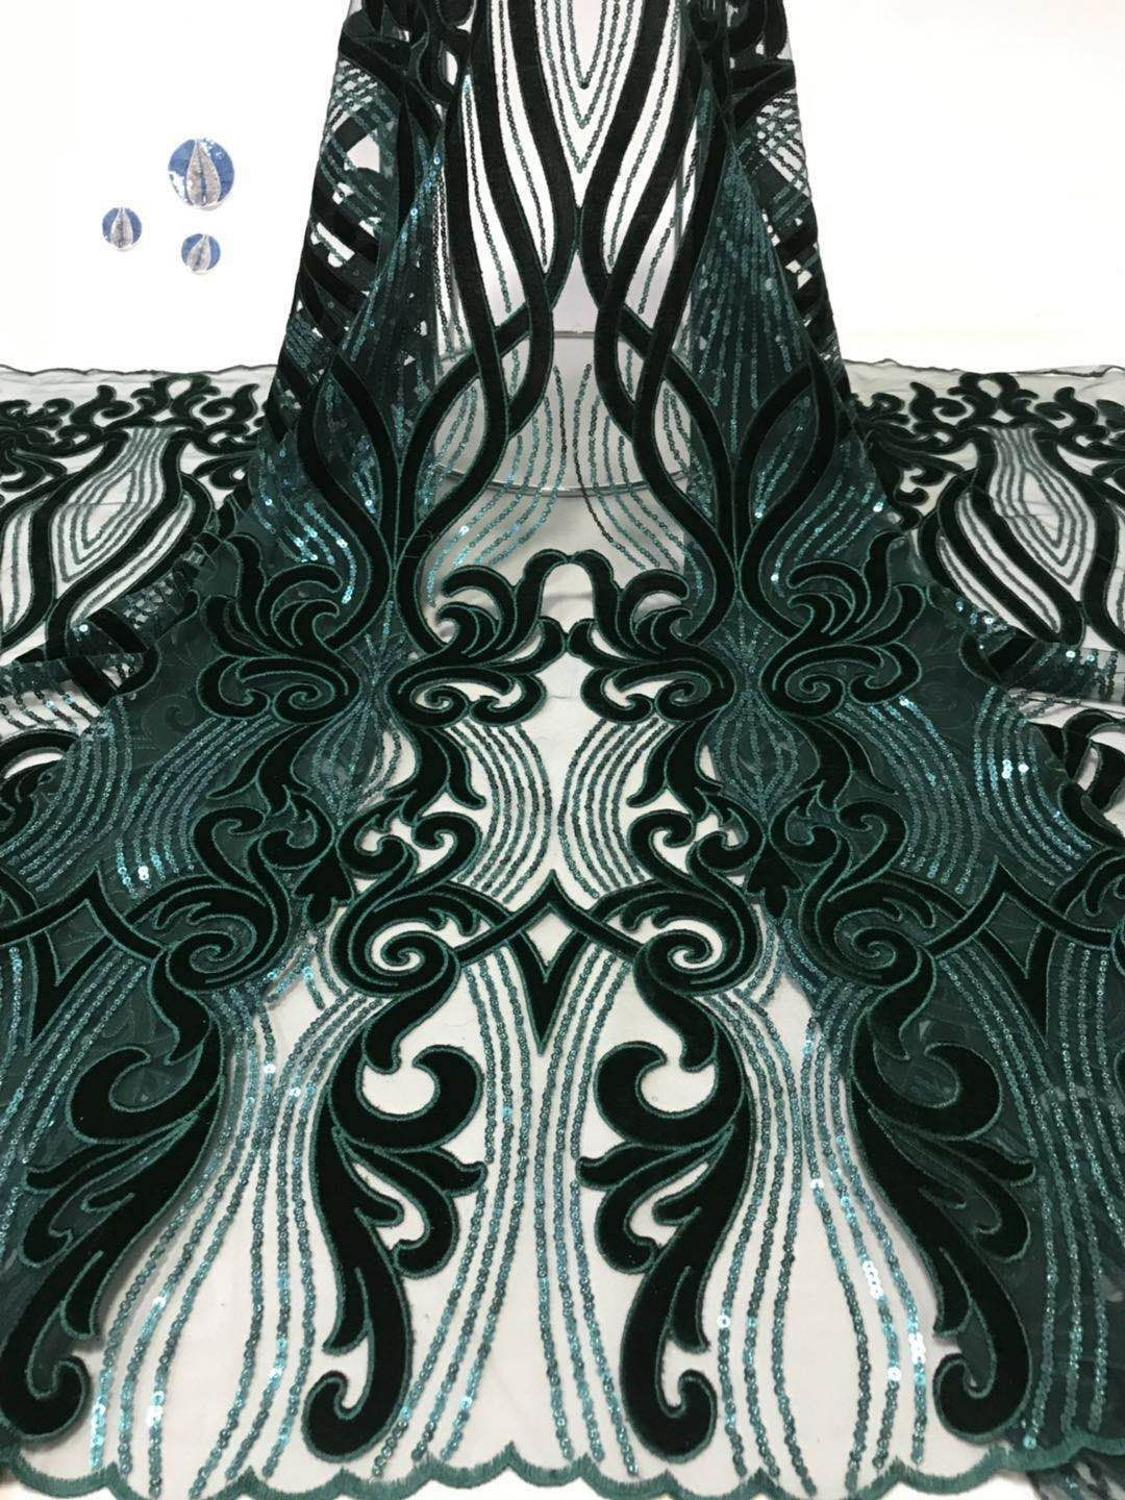 (5yards/lot ) 2018 New High quality emerald green Velvet African tulle lace French net lace fabric with Sequins for party dress